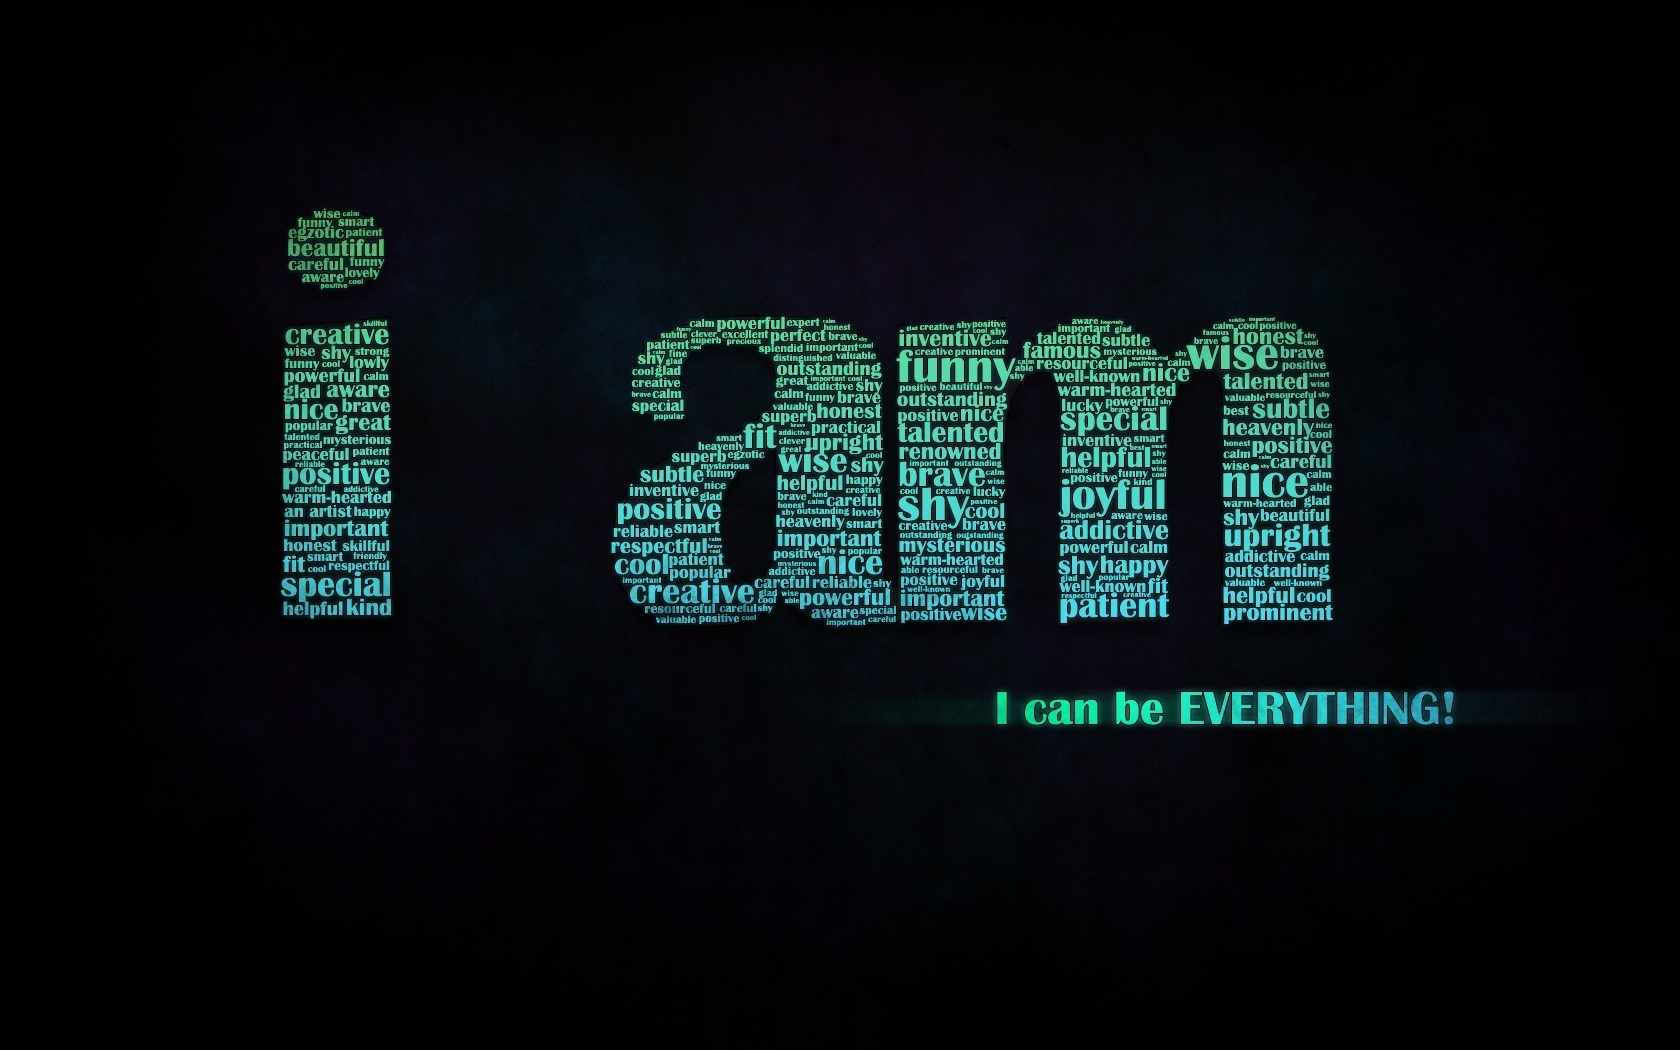 motivational quotes wallpapers hd 1080p for pc